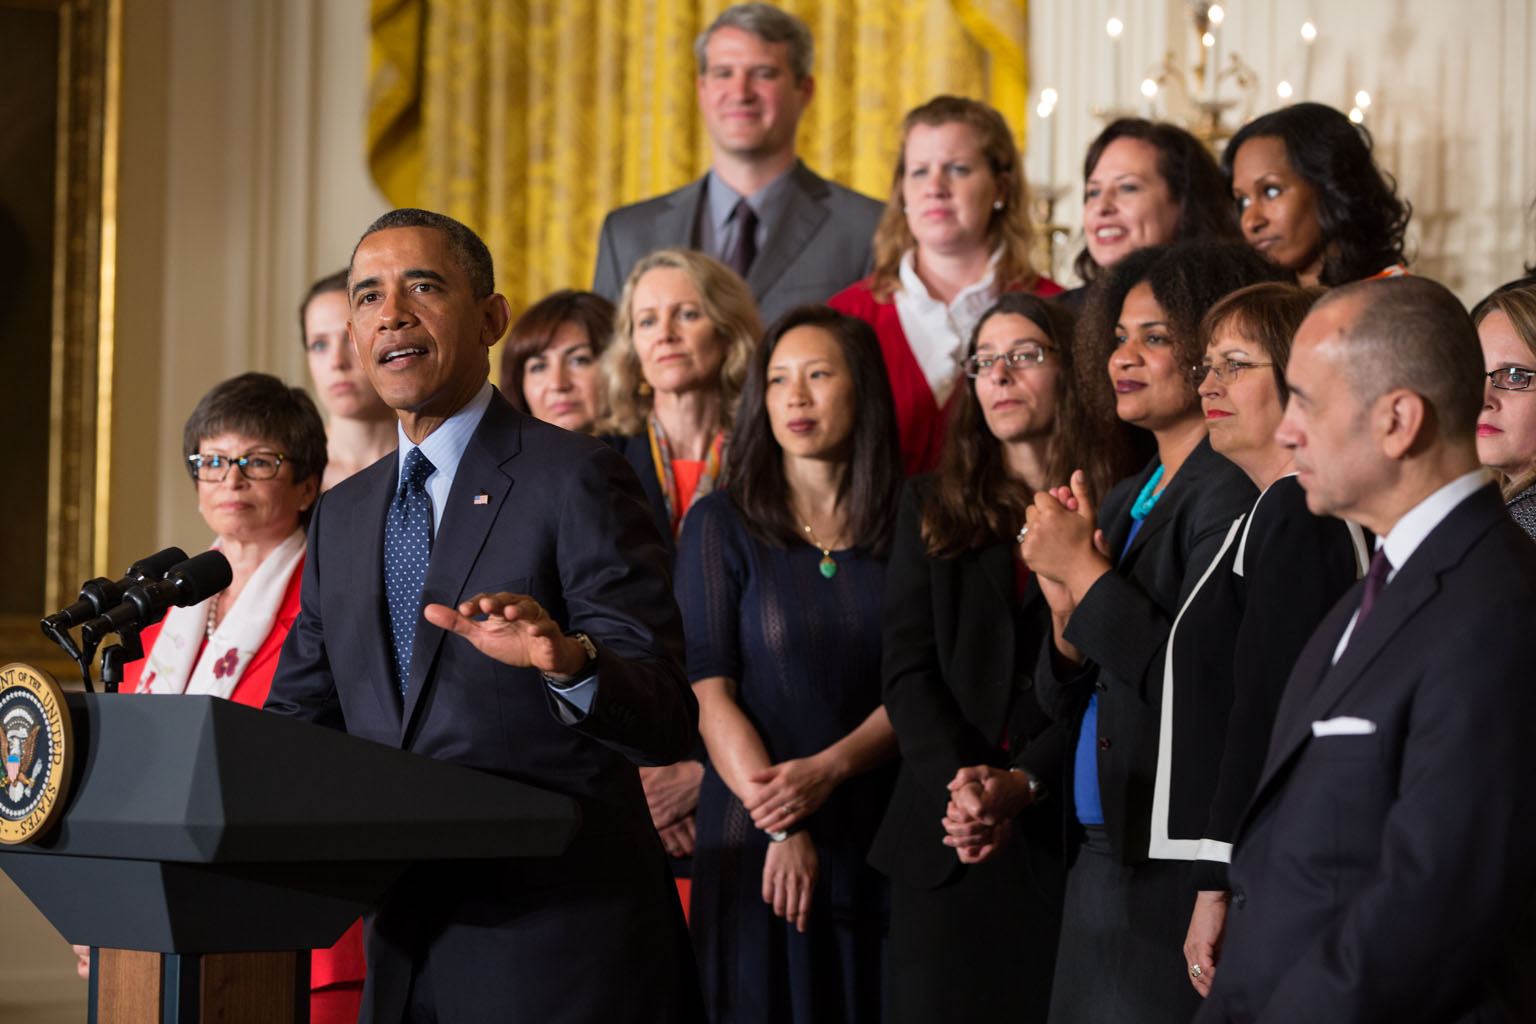 President Barack Obama delivers remarks commemorating the 50th anniversary of the Equal Pay Act